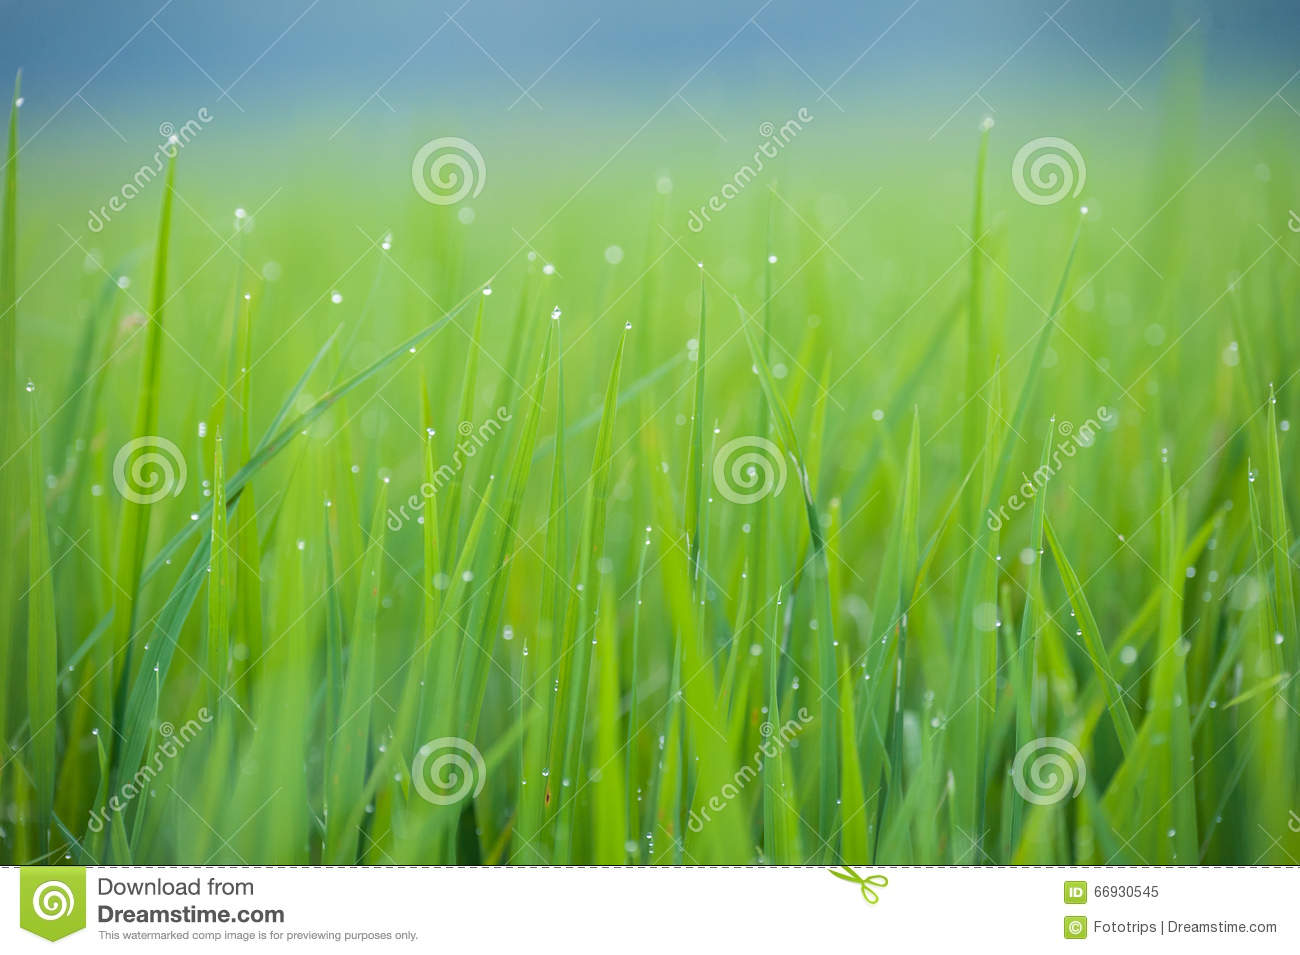 how to make grass green in spring